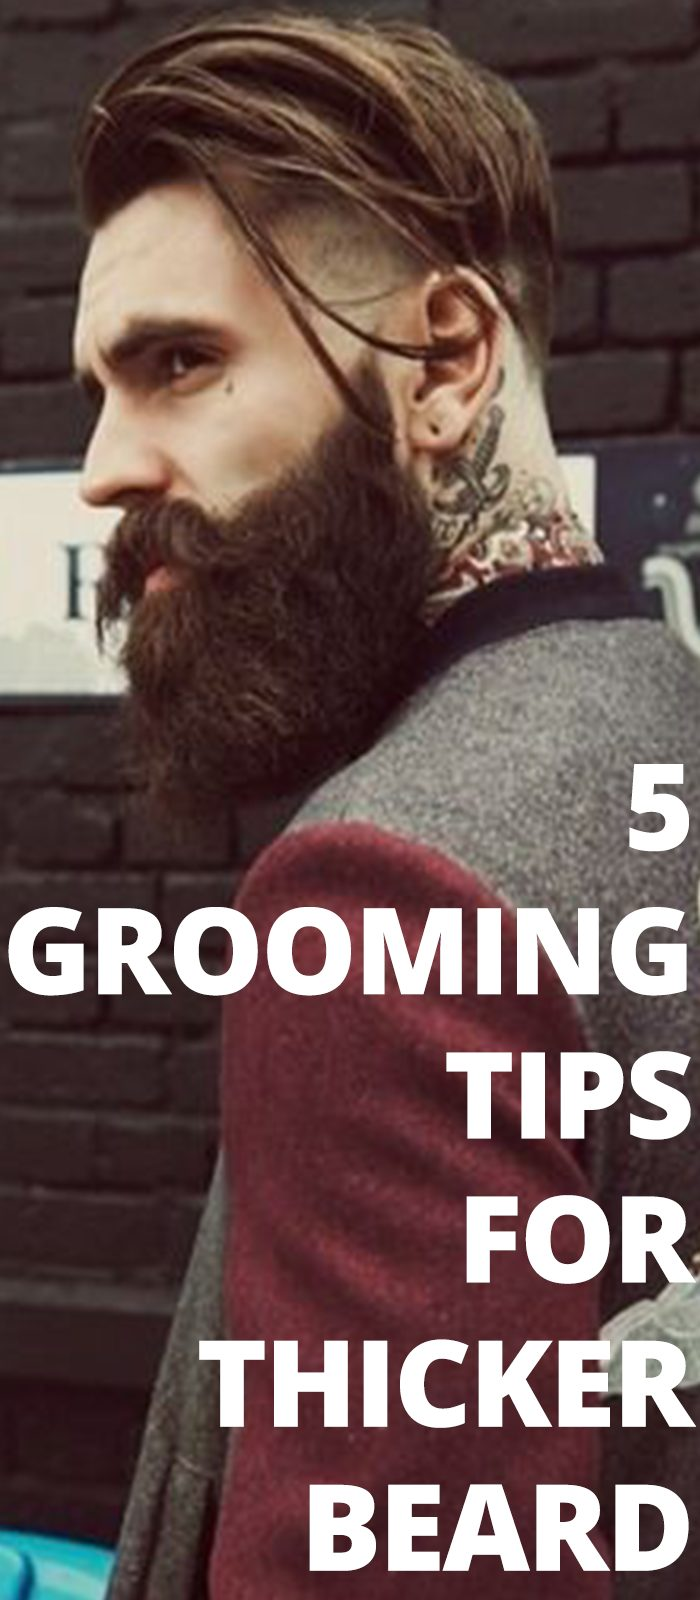 5 Grooming Tips For Thicker Beard